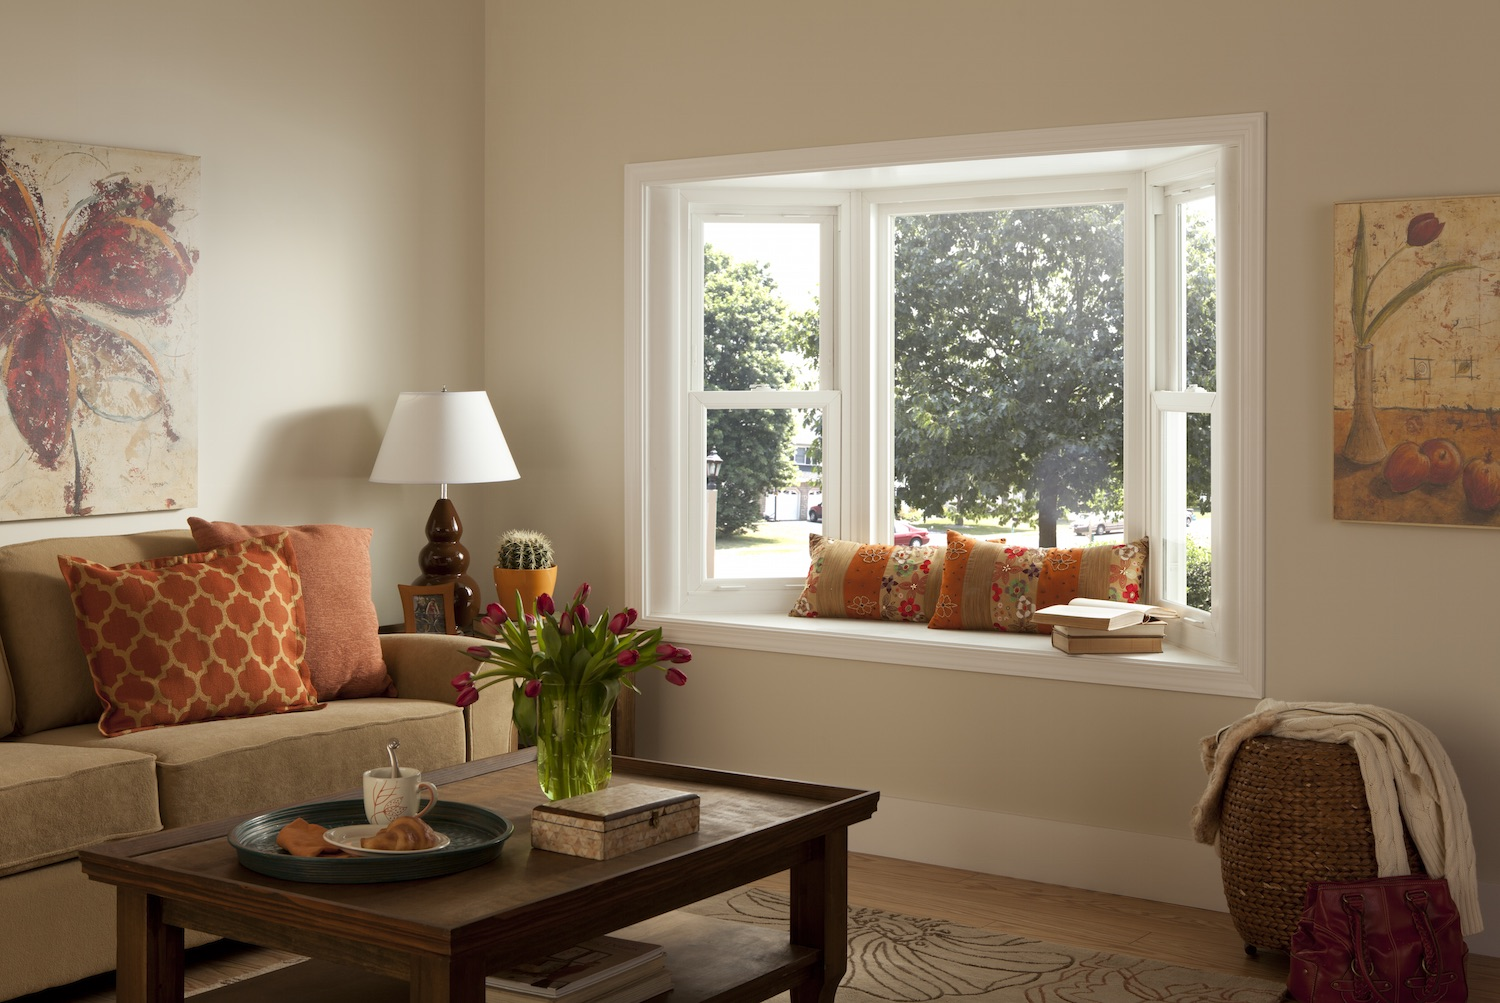 Feng Shui Your Living Room: Location, Layout, Furniture